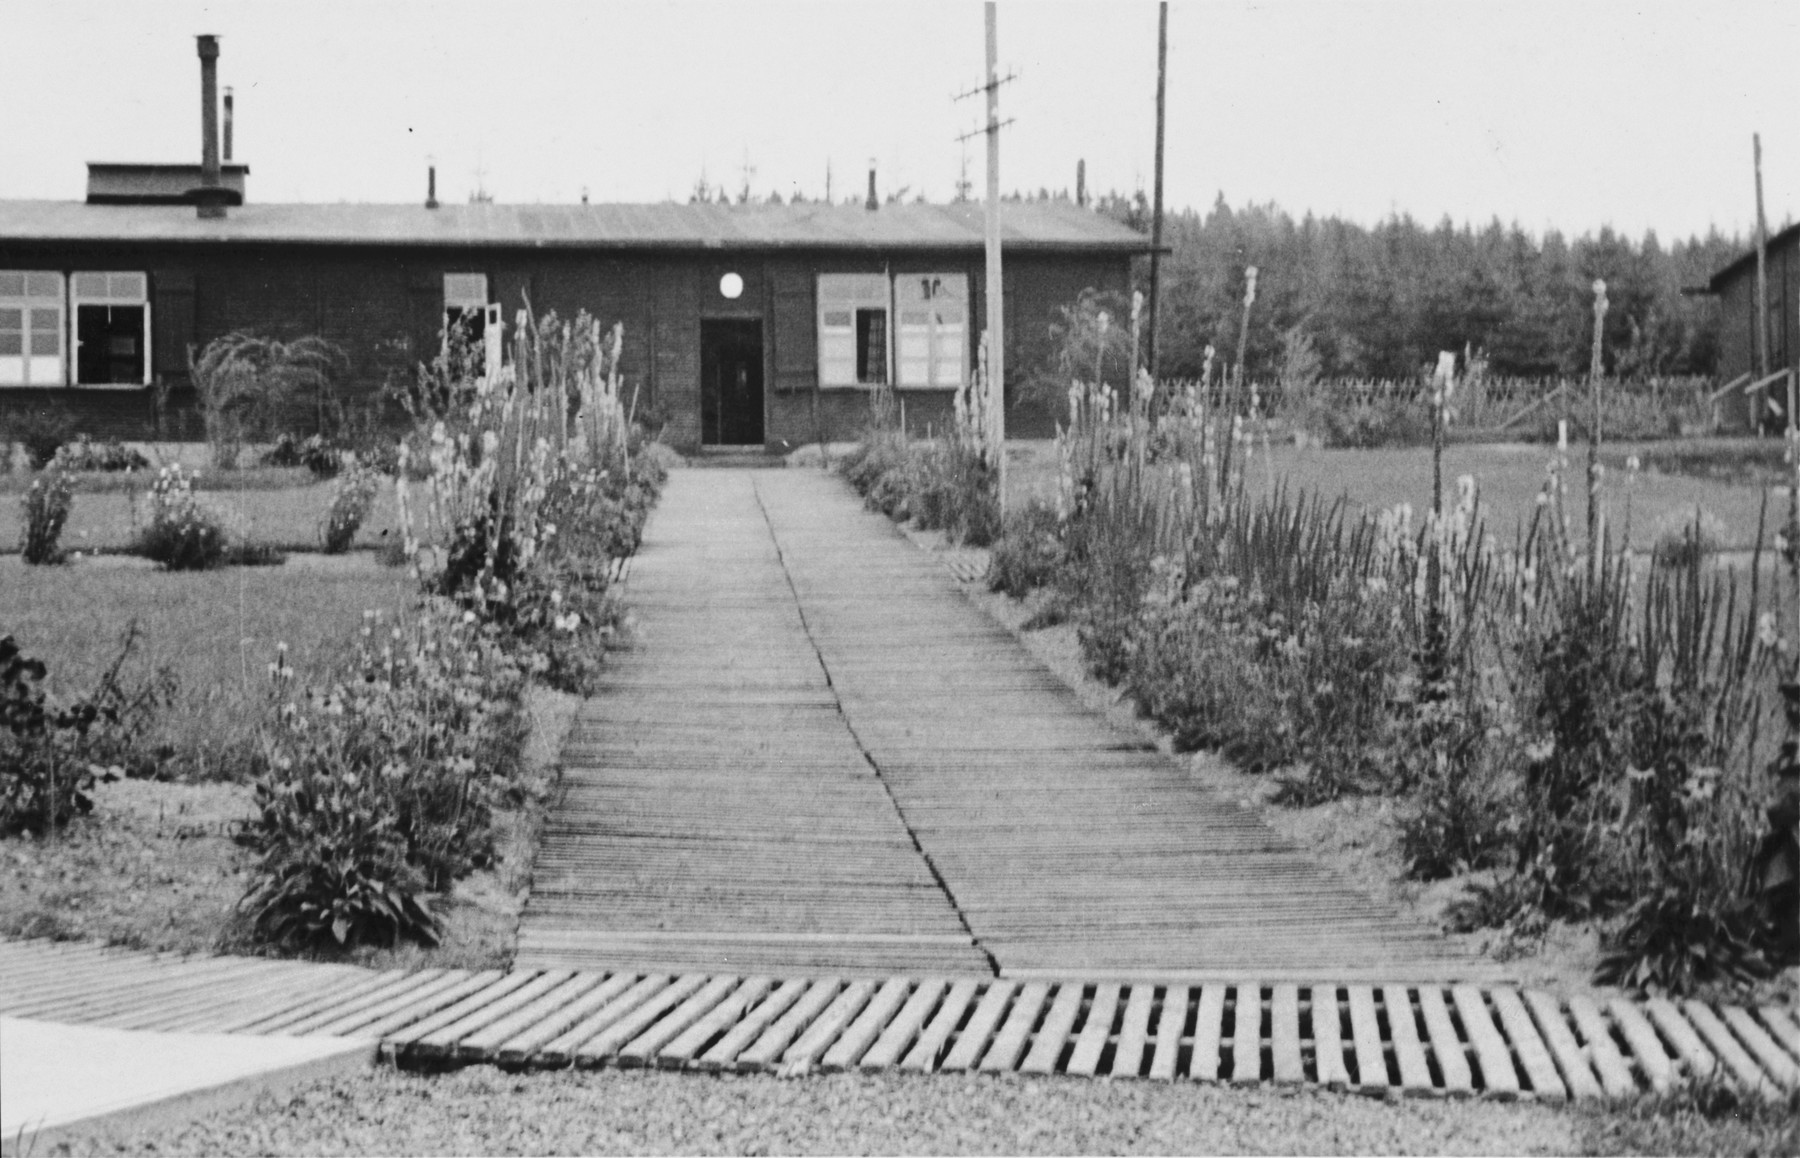 View of a wooden building and surrounding garden (probably the home of an SS officer)  in the Hinzert concentration camp (sub-camp of Buchenwald).